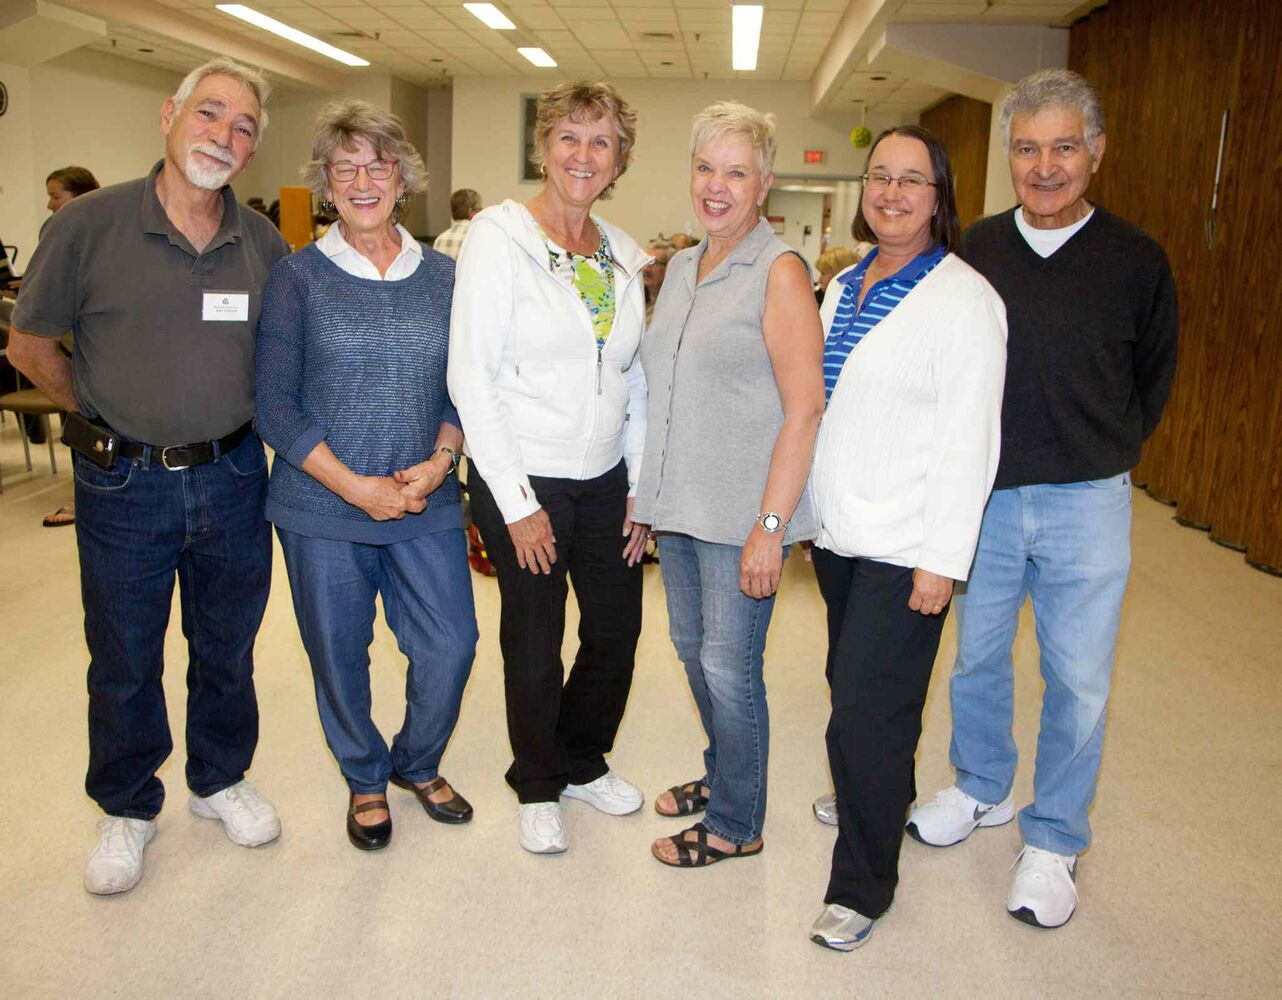 The Manitoba Camera Club has been a gathering place for shutterbugs since 1932. They meet every Tuesday from September to April. Pictured, from left, at their Sept. 8, 2015 meeting are Bert Schaffer, Ruth Penner, Elaine Delannoy, Wendy Stephenson, Gail Marchessault and Jack Kaplan.  (JOHN JOHNSTON / WINNIPEG FREE PRESS)